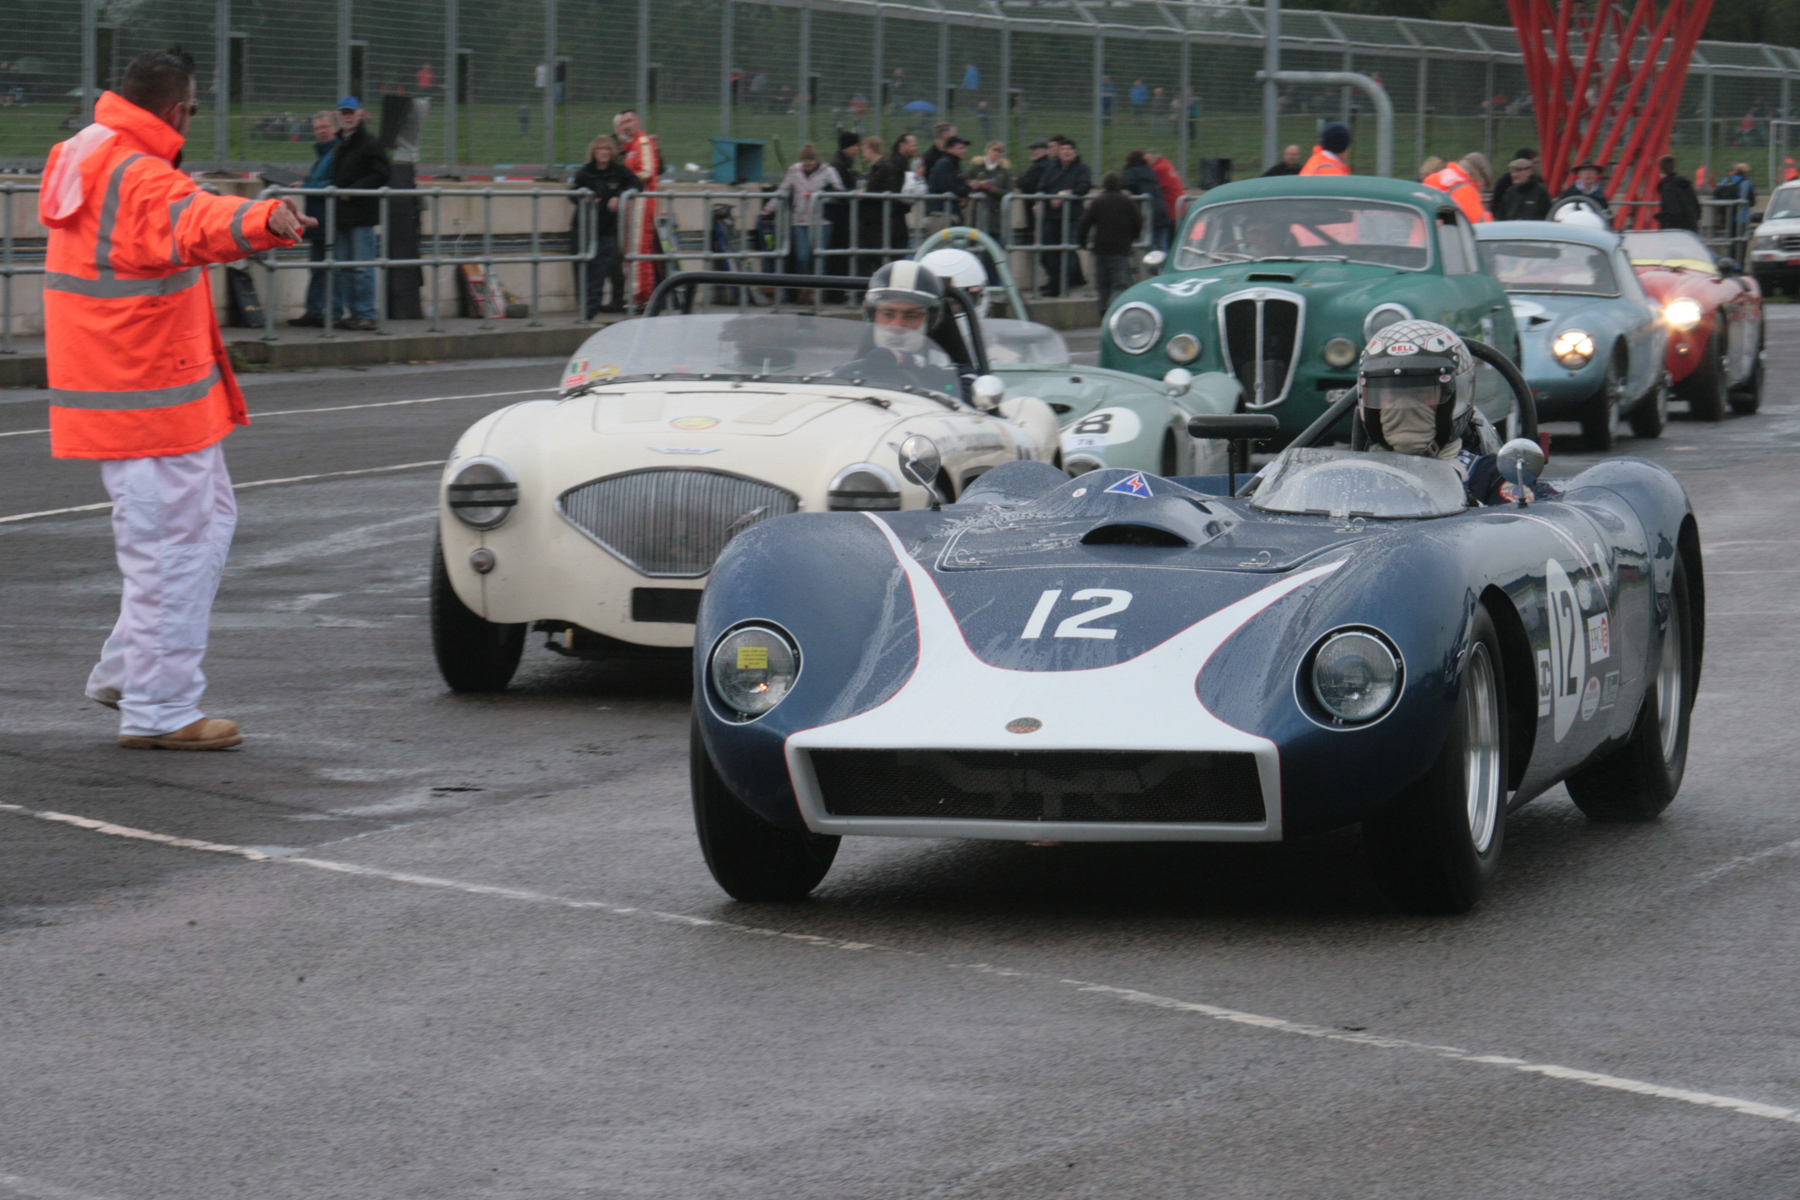 Richard Tyzack's Kellison J4R heads out for qualifying whilst Marc Mezey awaits clearance in the Austin Healey and directly behind in the green Lancia Aurelia is Andrew Davenall- all 3 drivers new to FISCAR Photo - John Turner